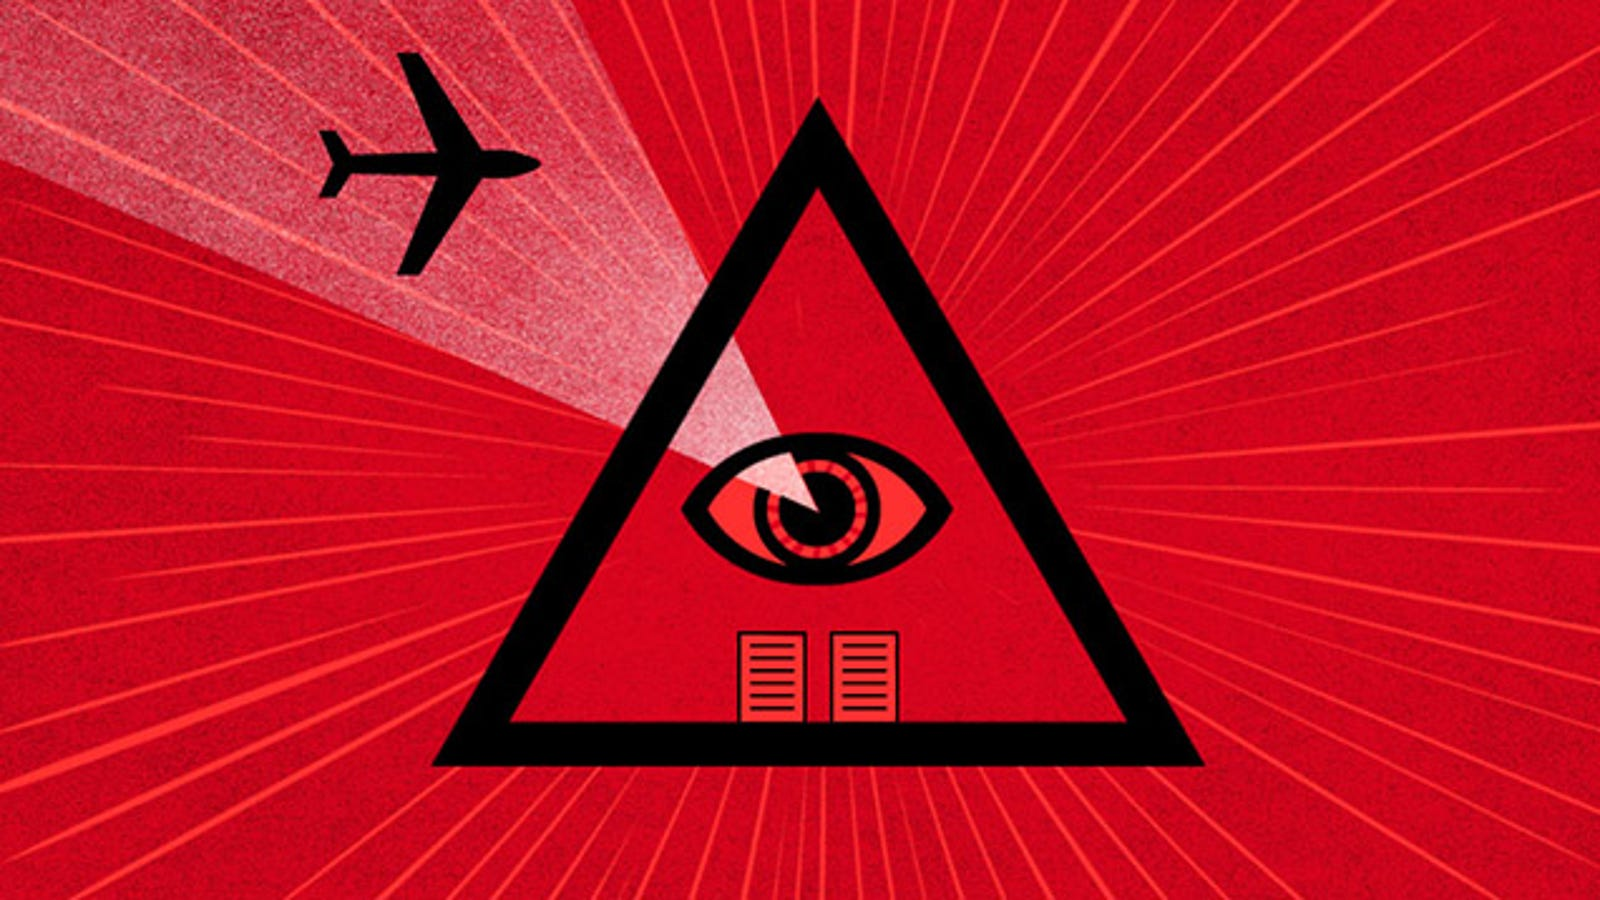 Wingdings Predicted 9/11: A Truther's Tale